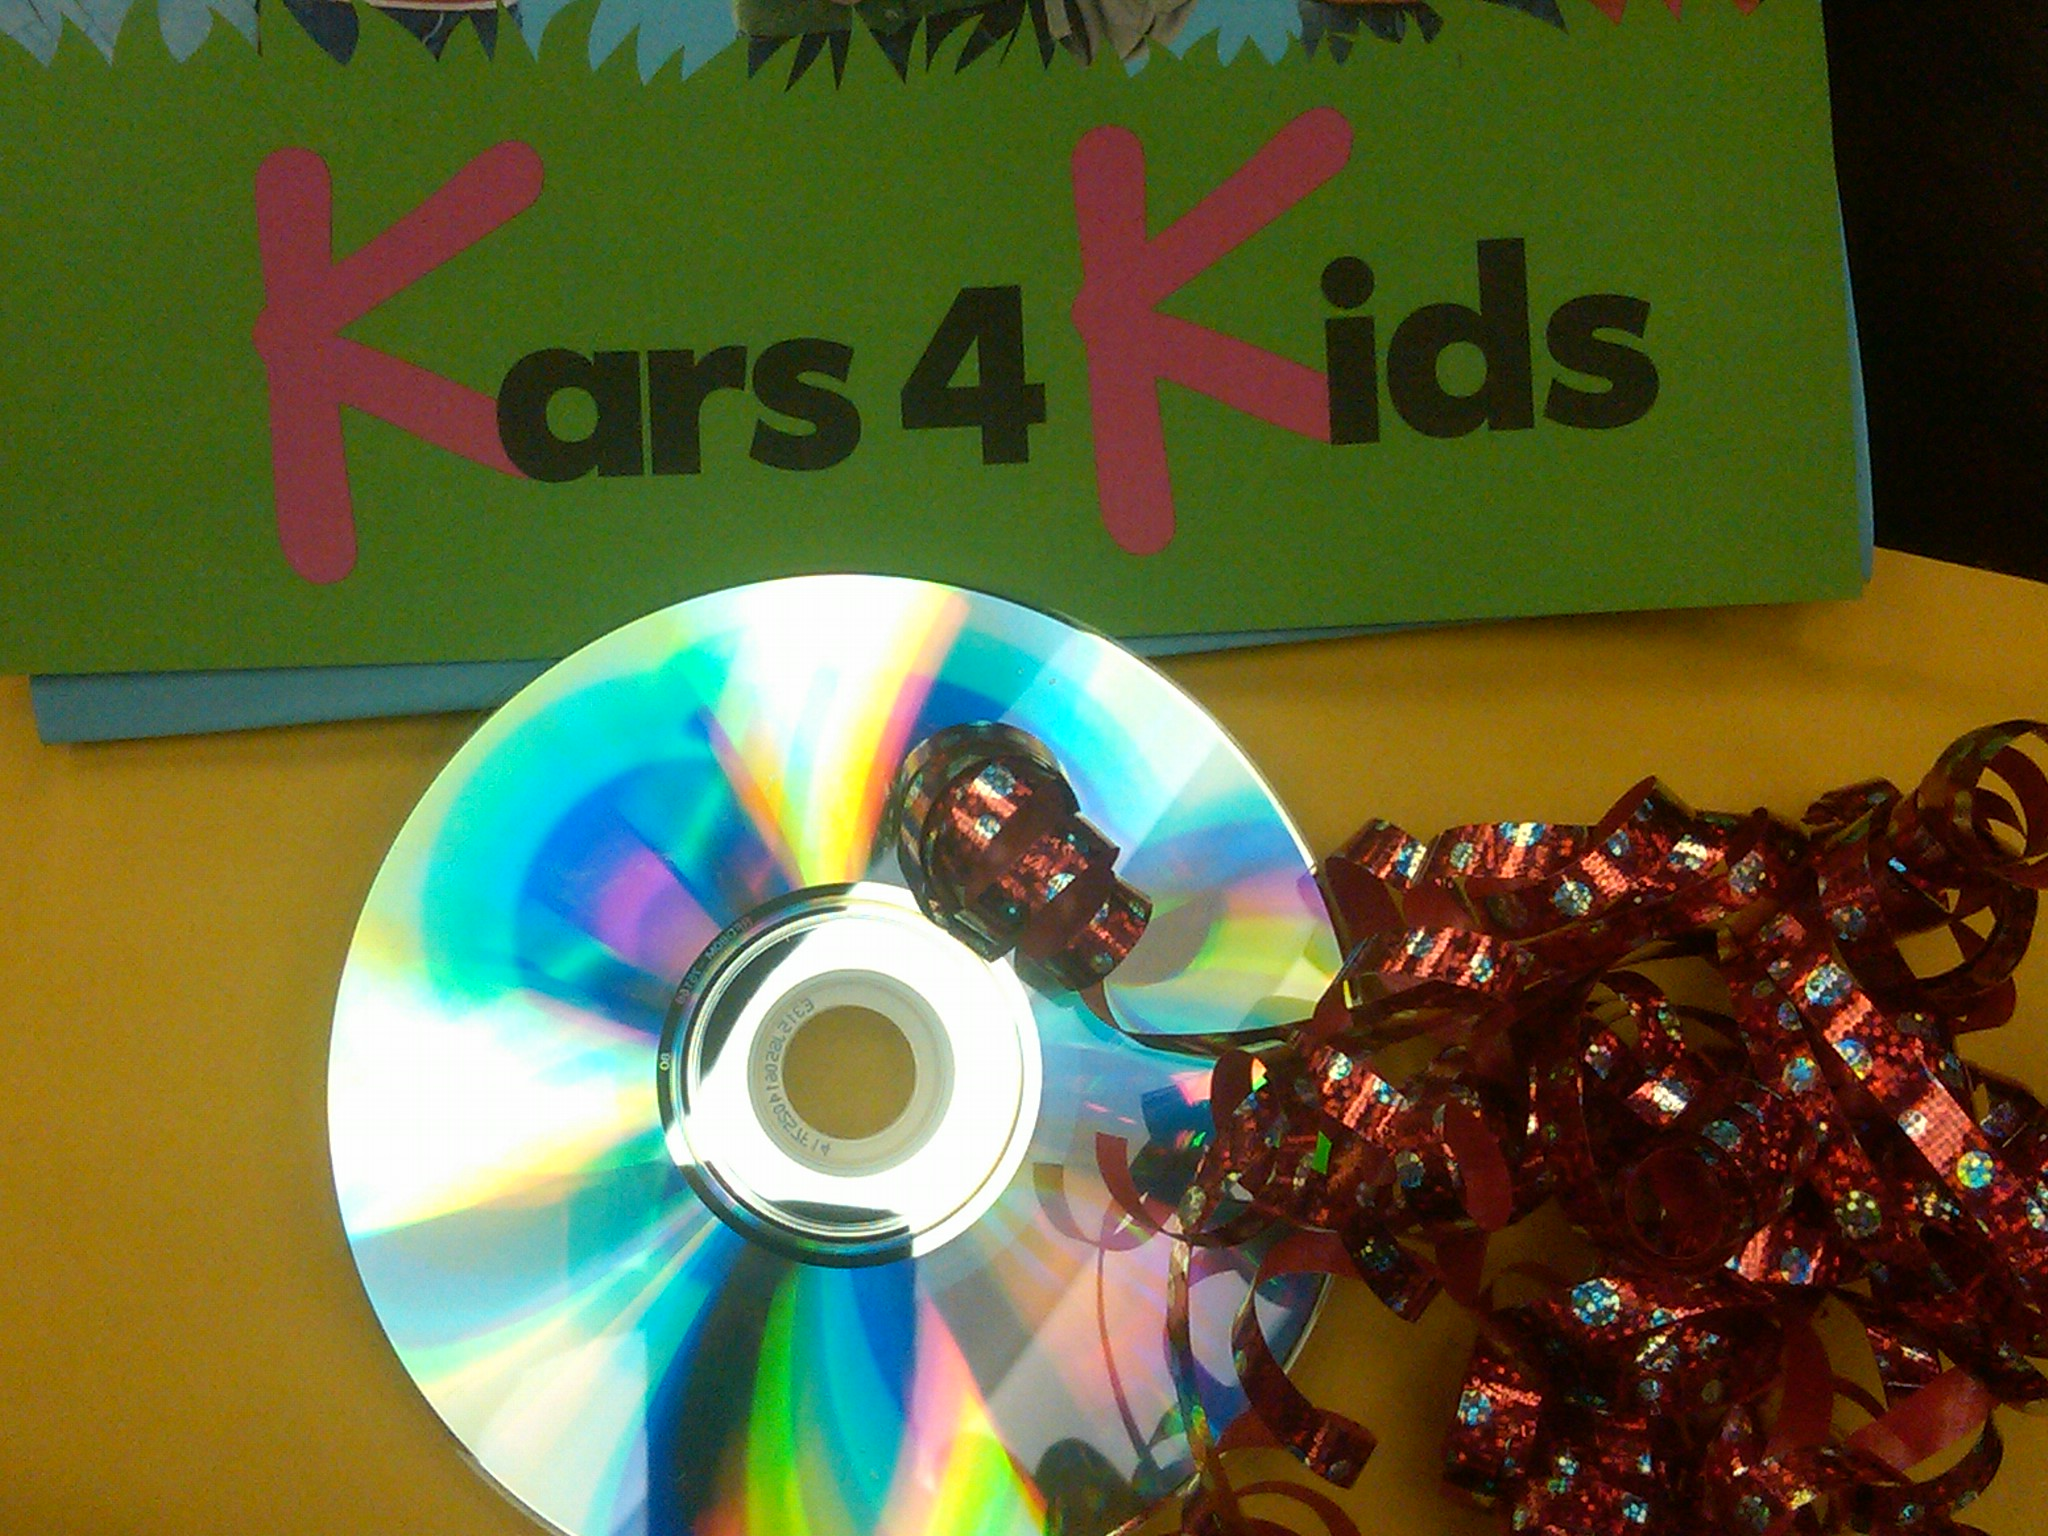 Kars For Kids 1 877 Kars 4 Kids Behind The Most Hated And